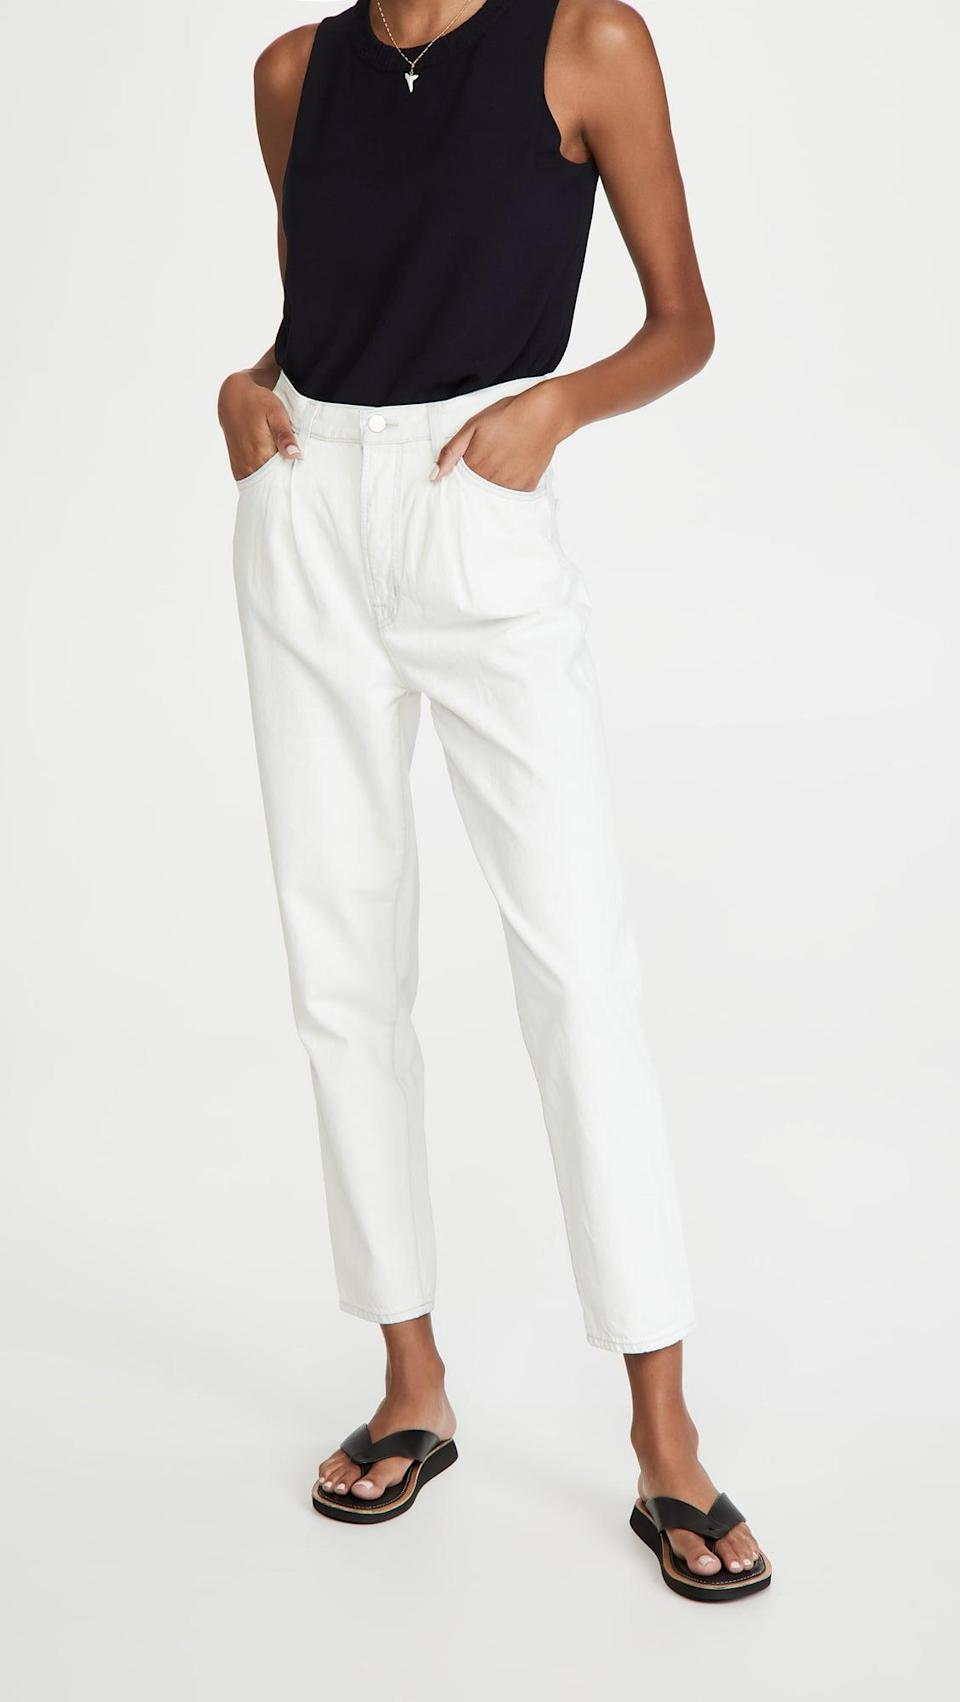 "<p>These <a href=""https://www.popsugar.com/buy/J-Brand-Pleat-Front-Peg-Jeans-585702?p_name=J%20Brand%20Pleat%20Front%20Peg%20Jeans&retailer=shopbop.com&pid=585702&price=248&evar1=fab%3Aus&evar9=45615413&evar98=https%3A%2F%2Fwww.popsugar.com%2Ffashion%2Fphoto-gallery%2F45615413%2Fimage%2F47583284%2FJ-Brand-Pleat-Front-Peg-Jeans&list1=shopping%2Cdenim%2Cwinter%2Cwinter%20fashion&prop13=mobile&pdata=1"" class=""link rapid-noclick-resp"" rel=""nofollow noopener"" target=""_blank"" data-ylk=""slk:J Brand Pleat Front Peg Jeans"">J Brand Pleat Front Peg Jeans</a> ($248) are a comfy choice.</p>"